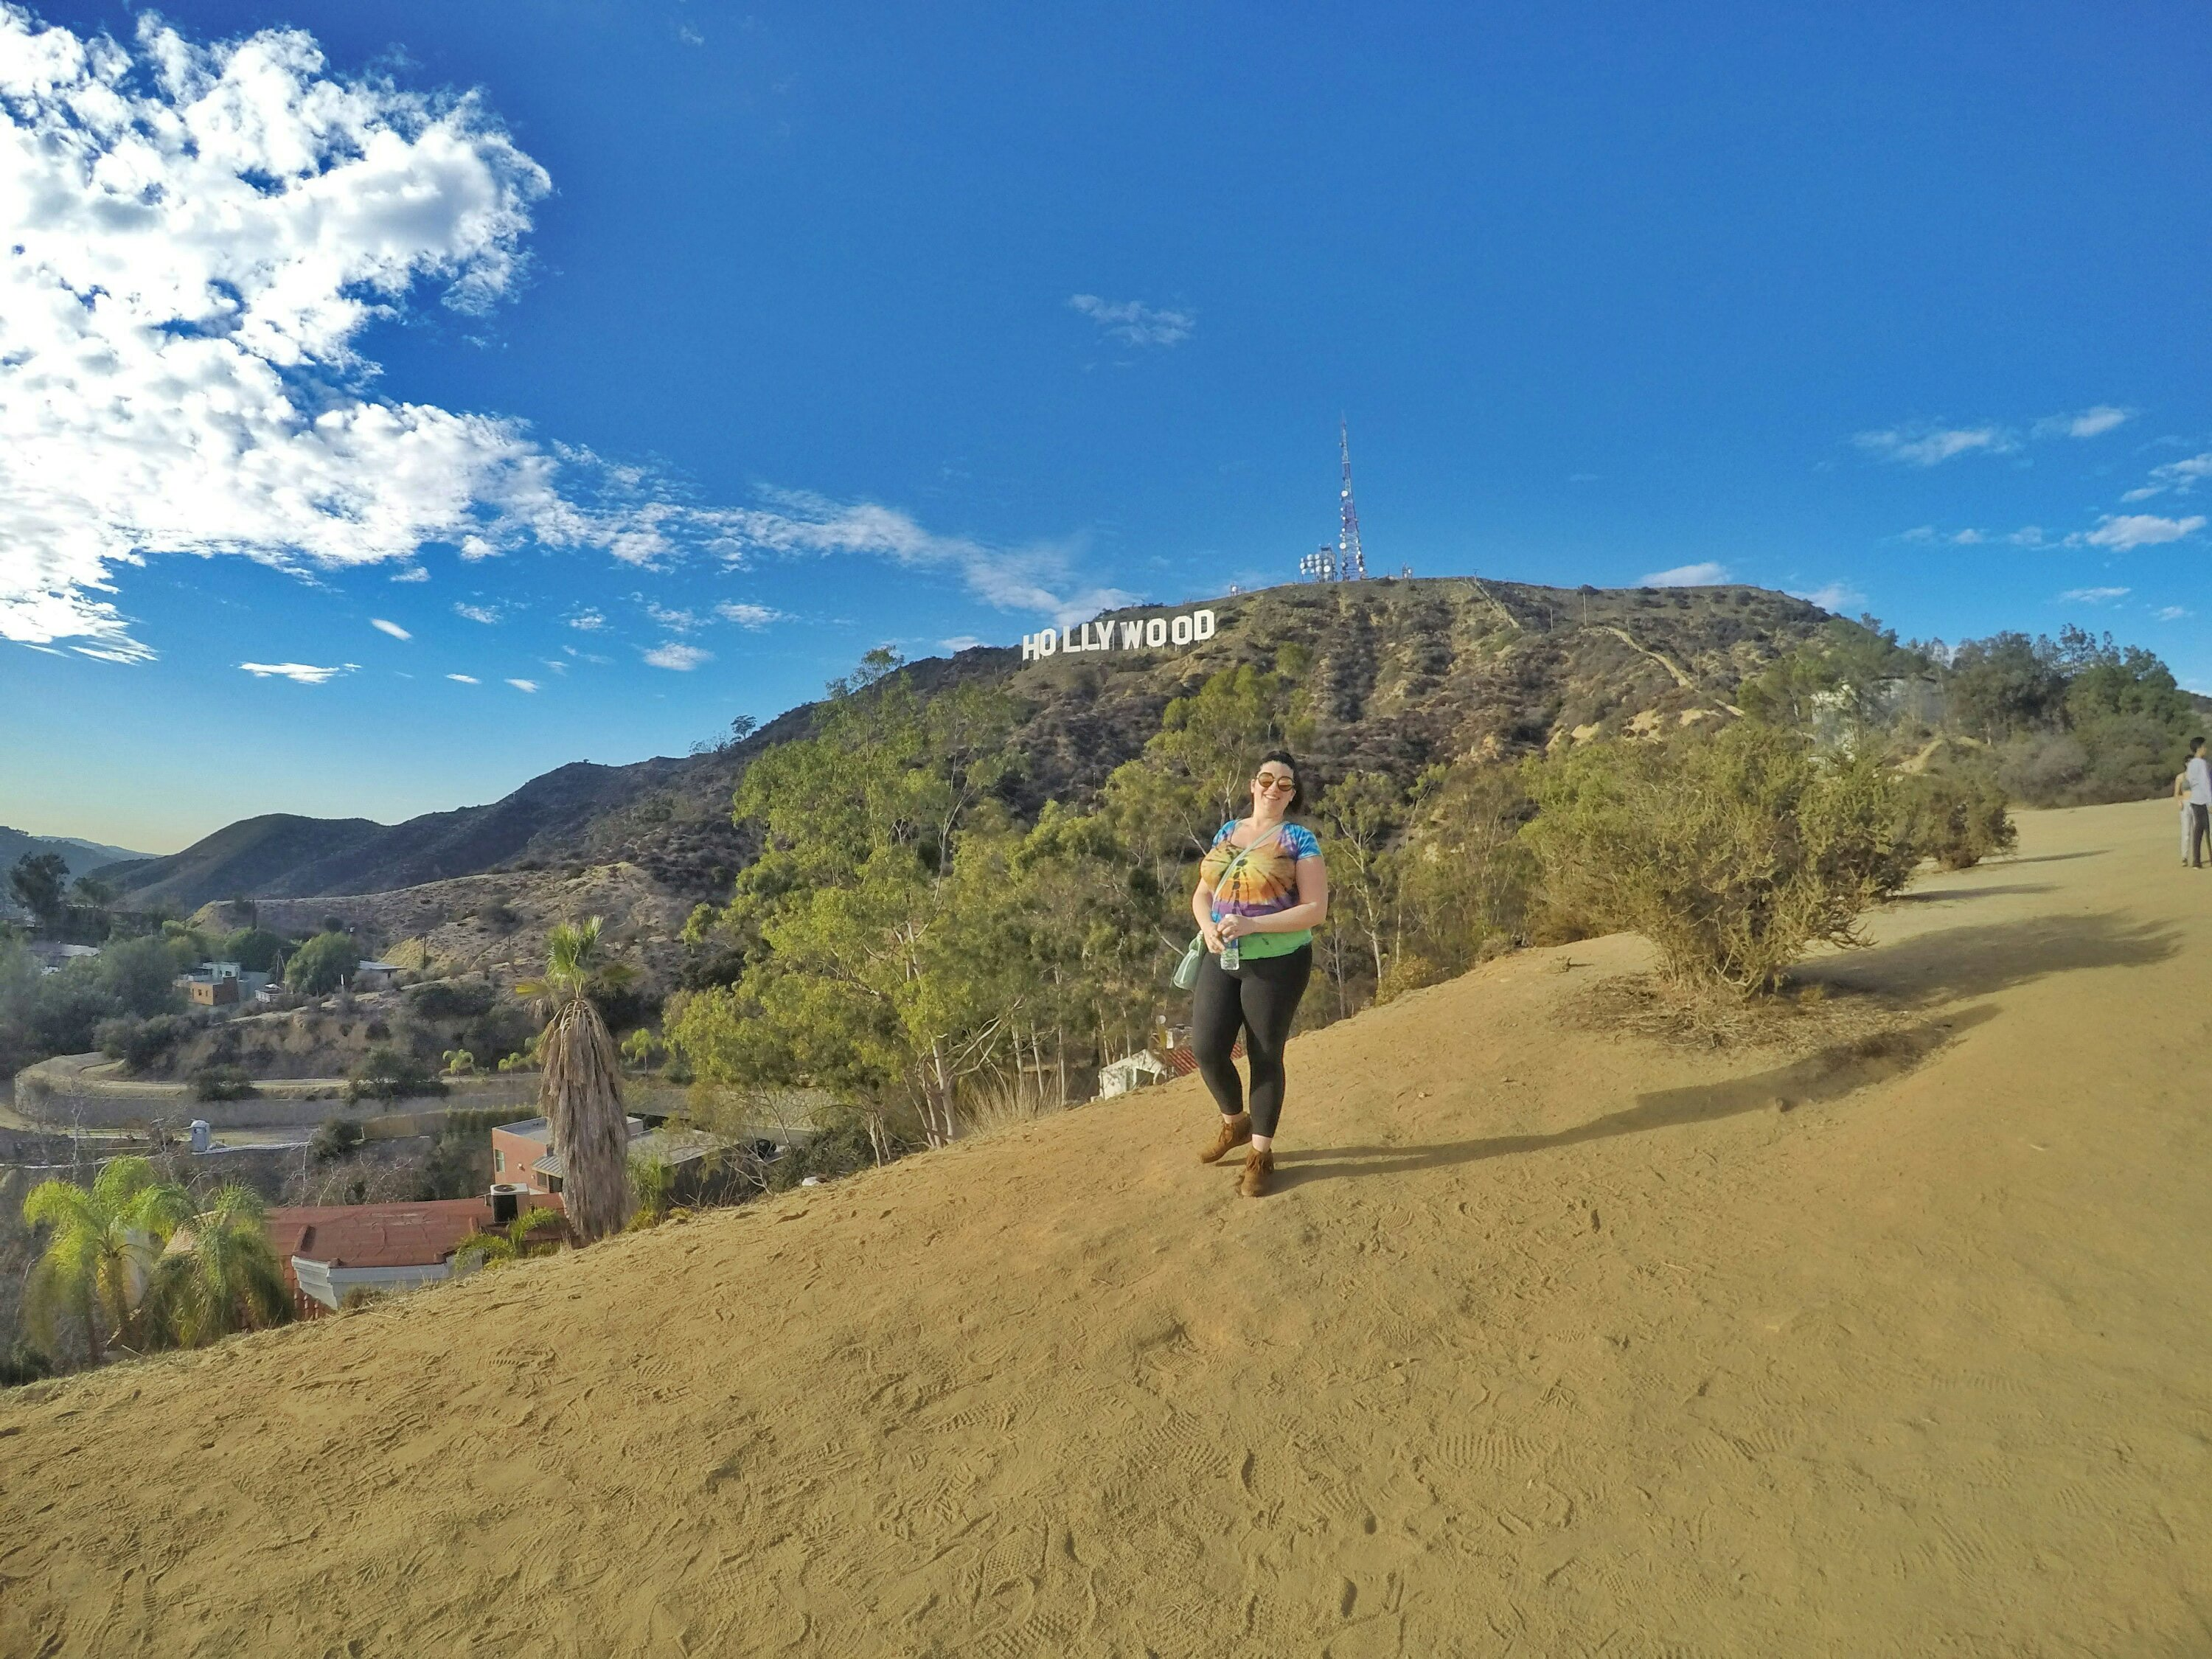 Hiked to Hollywood Sign